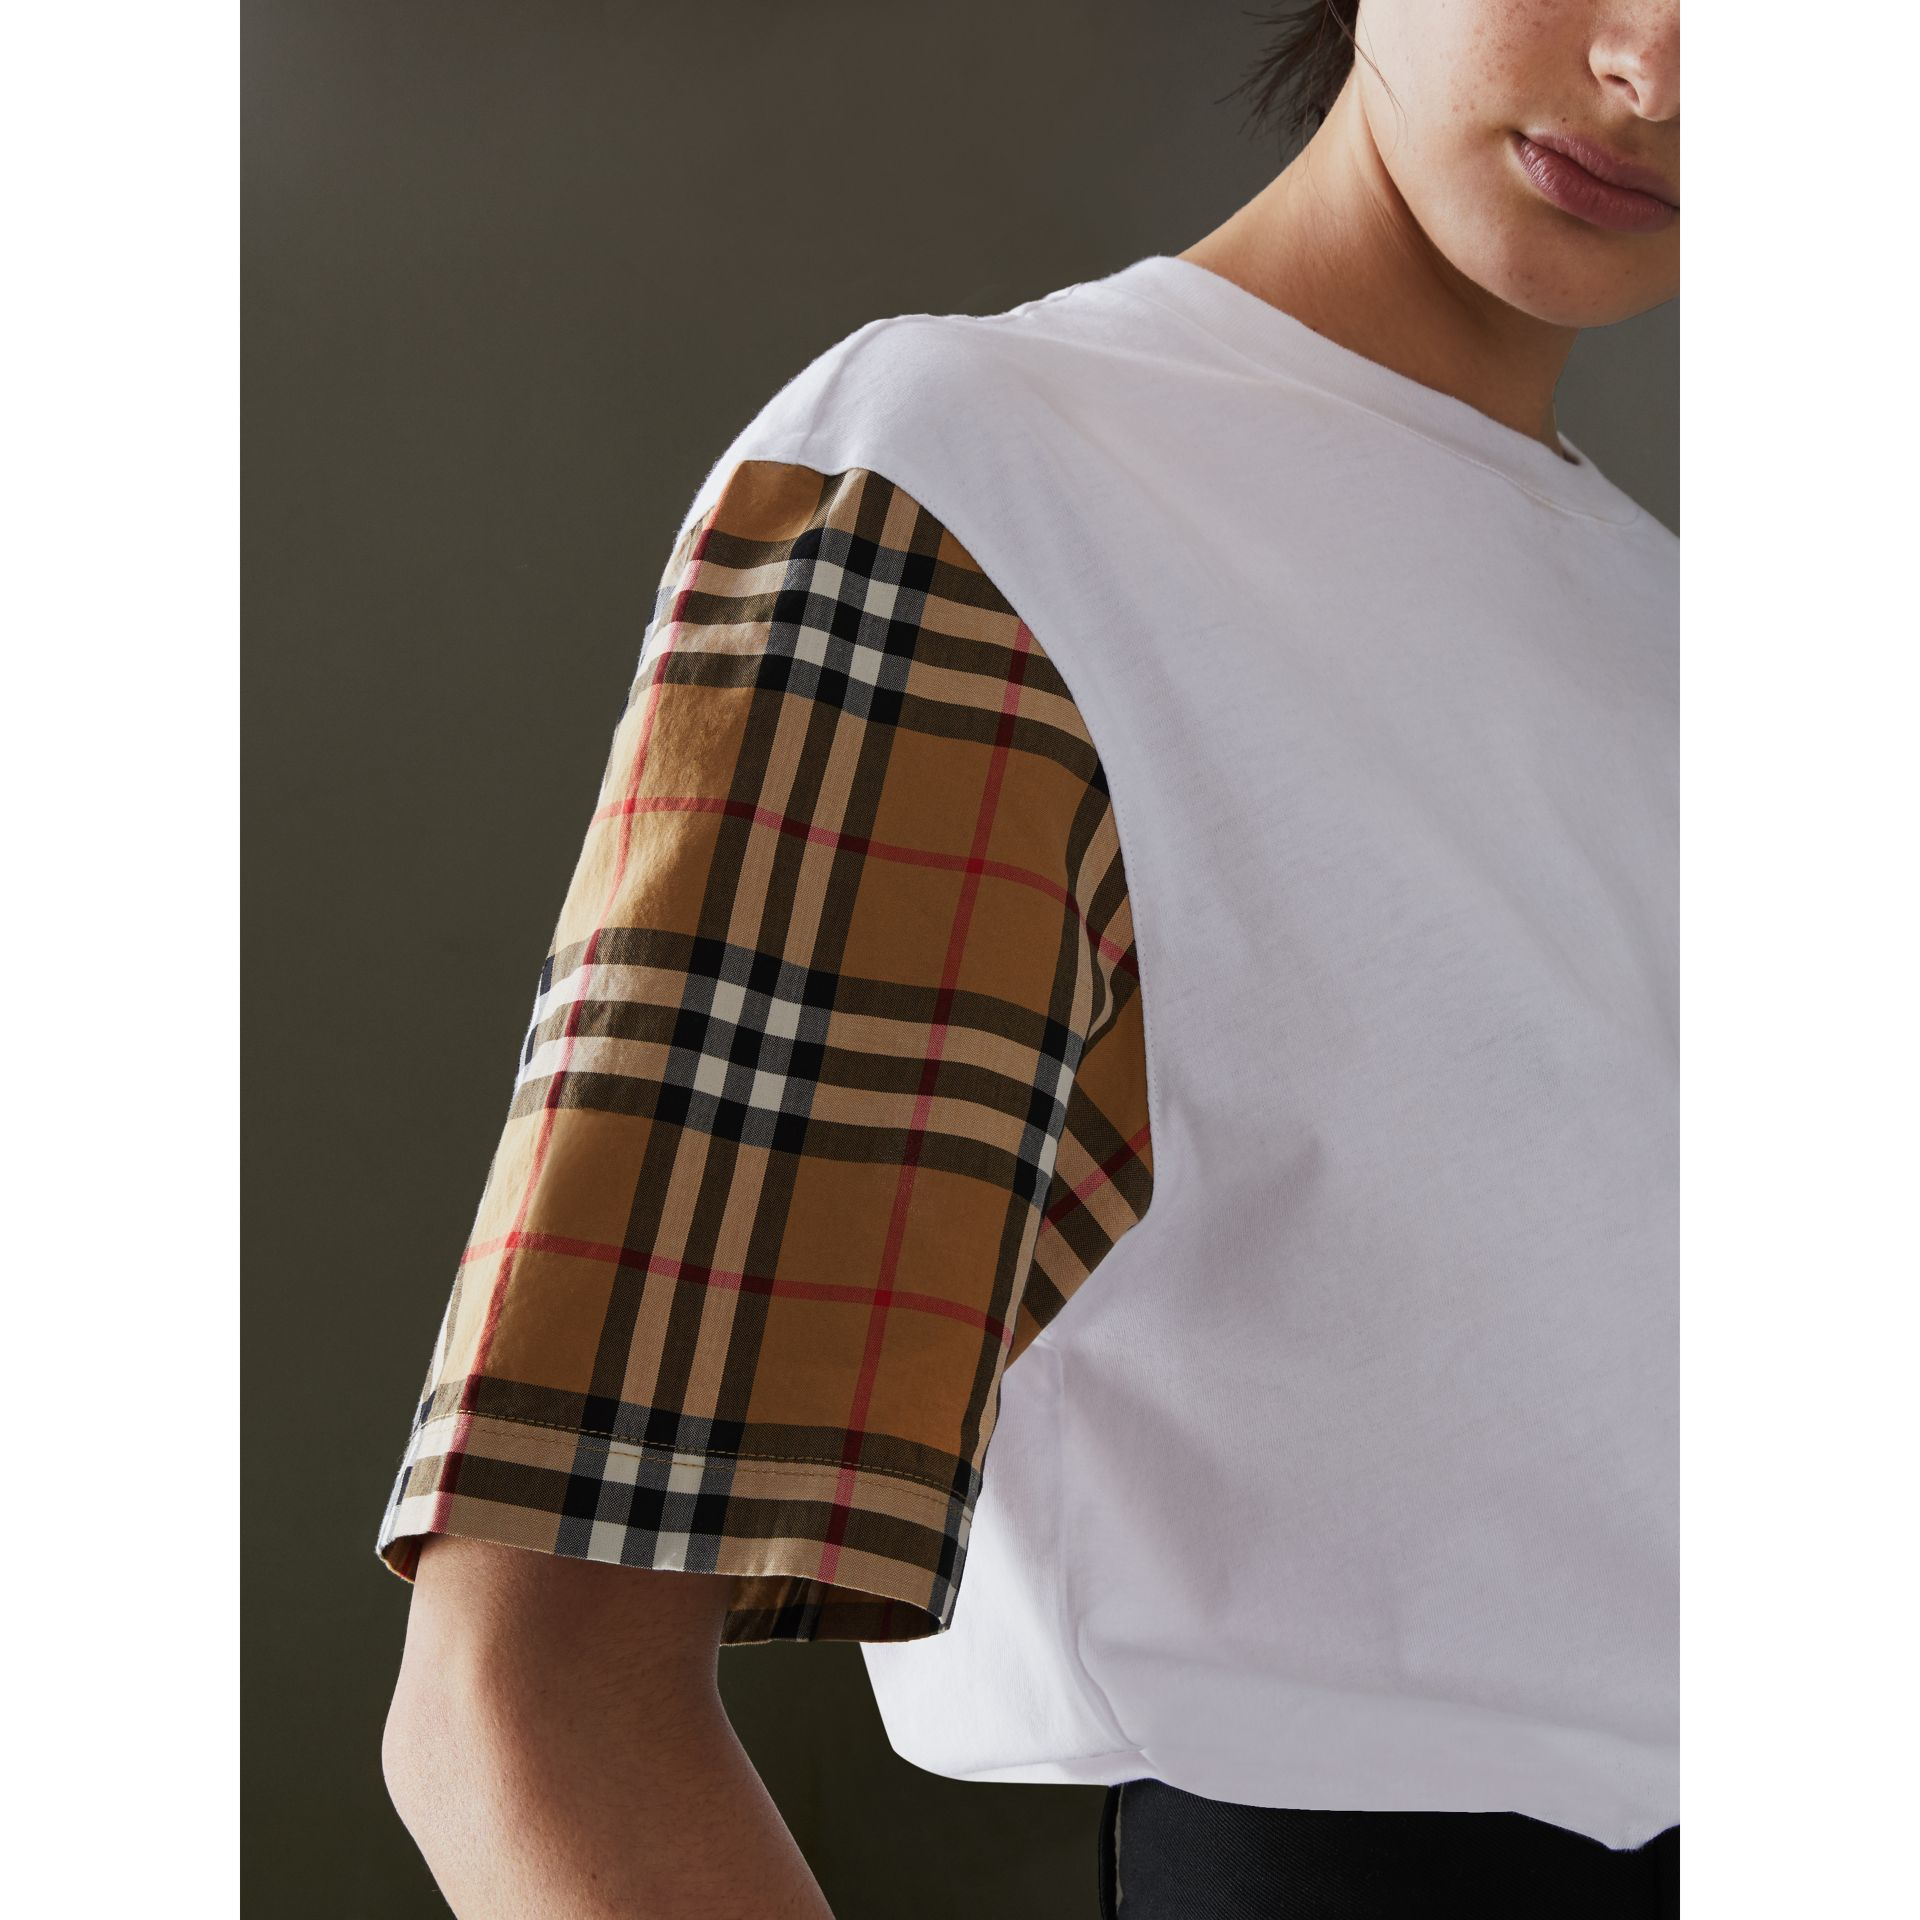 Vintage Check Sleeve Cotton T-shirt in White - Women | Burberry United Kingdom - gallery image 1